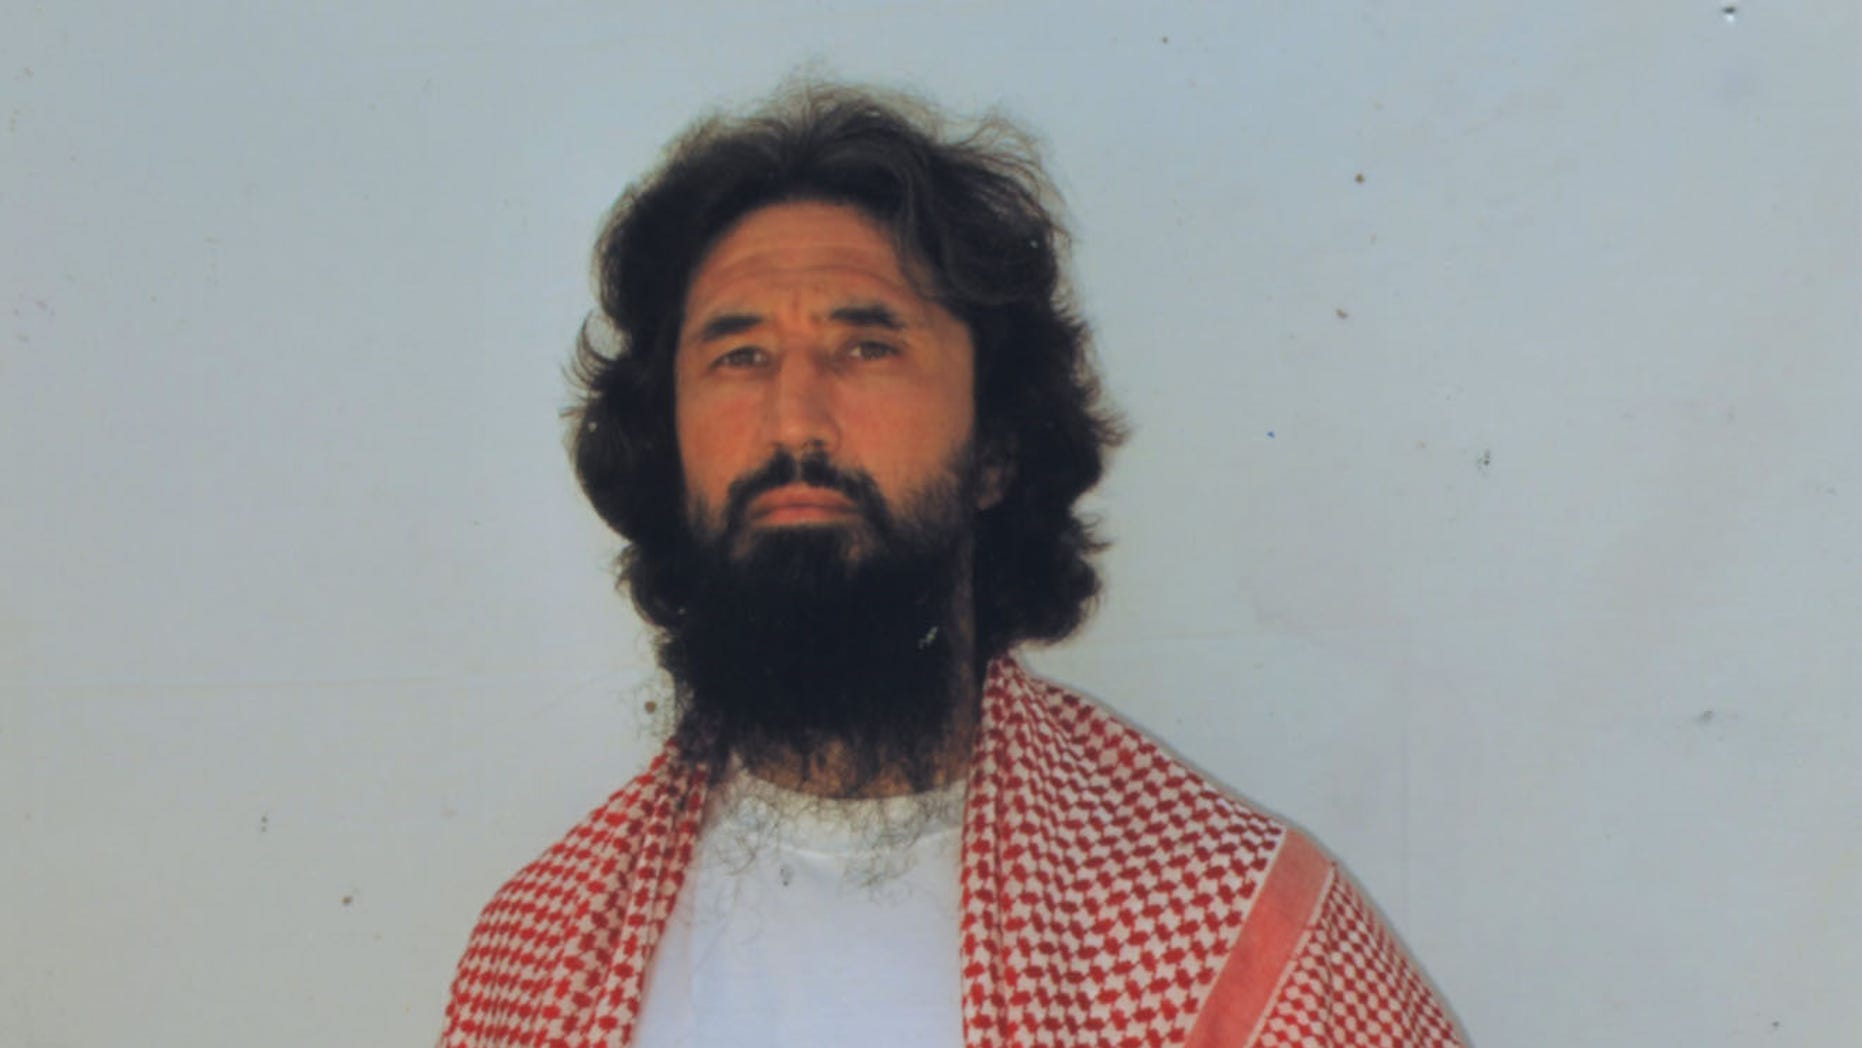 Ravil Mingazov spent 15 years in Gitmo and now fights a return to Russia